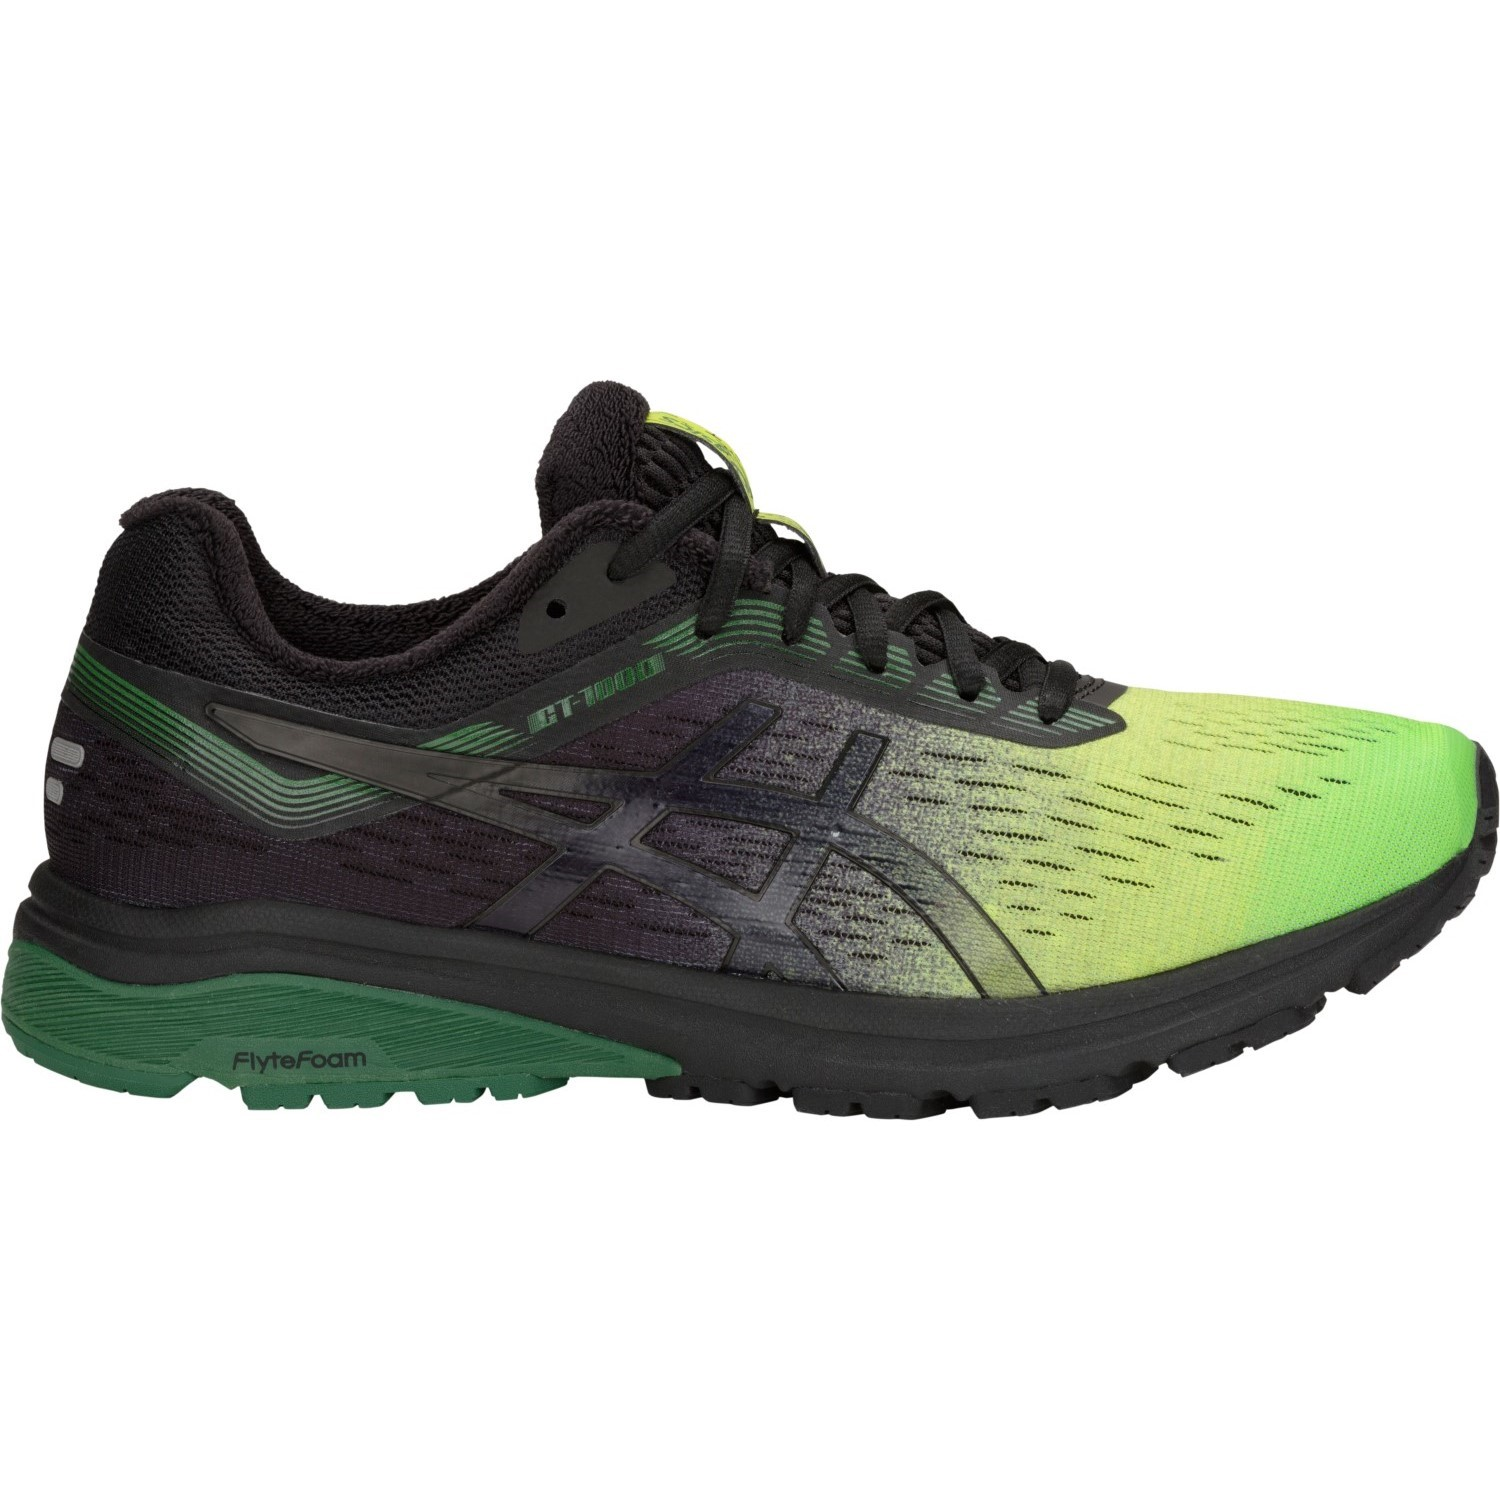 af621857c439a Asics GT-1000 7 Solar Shower - Mens Running Shoes - Neon Lime Black ...